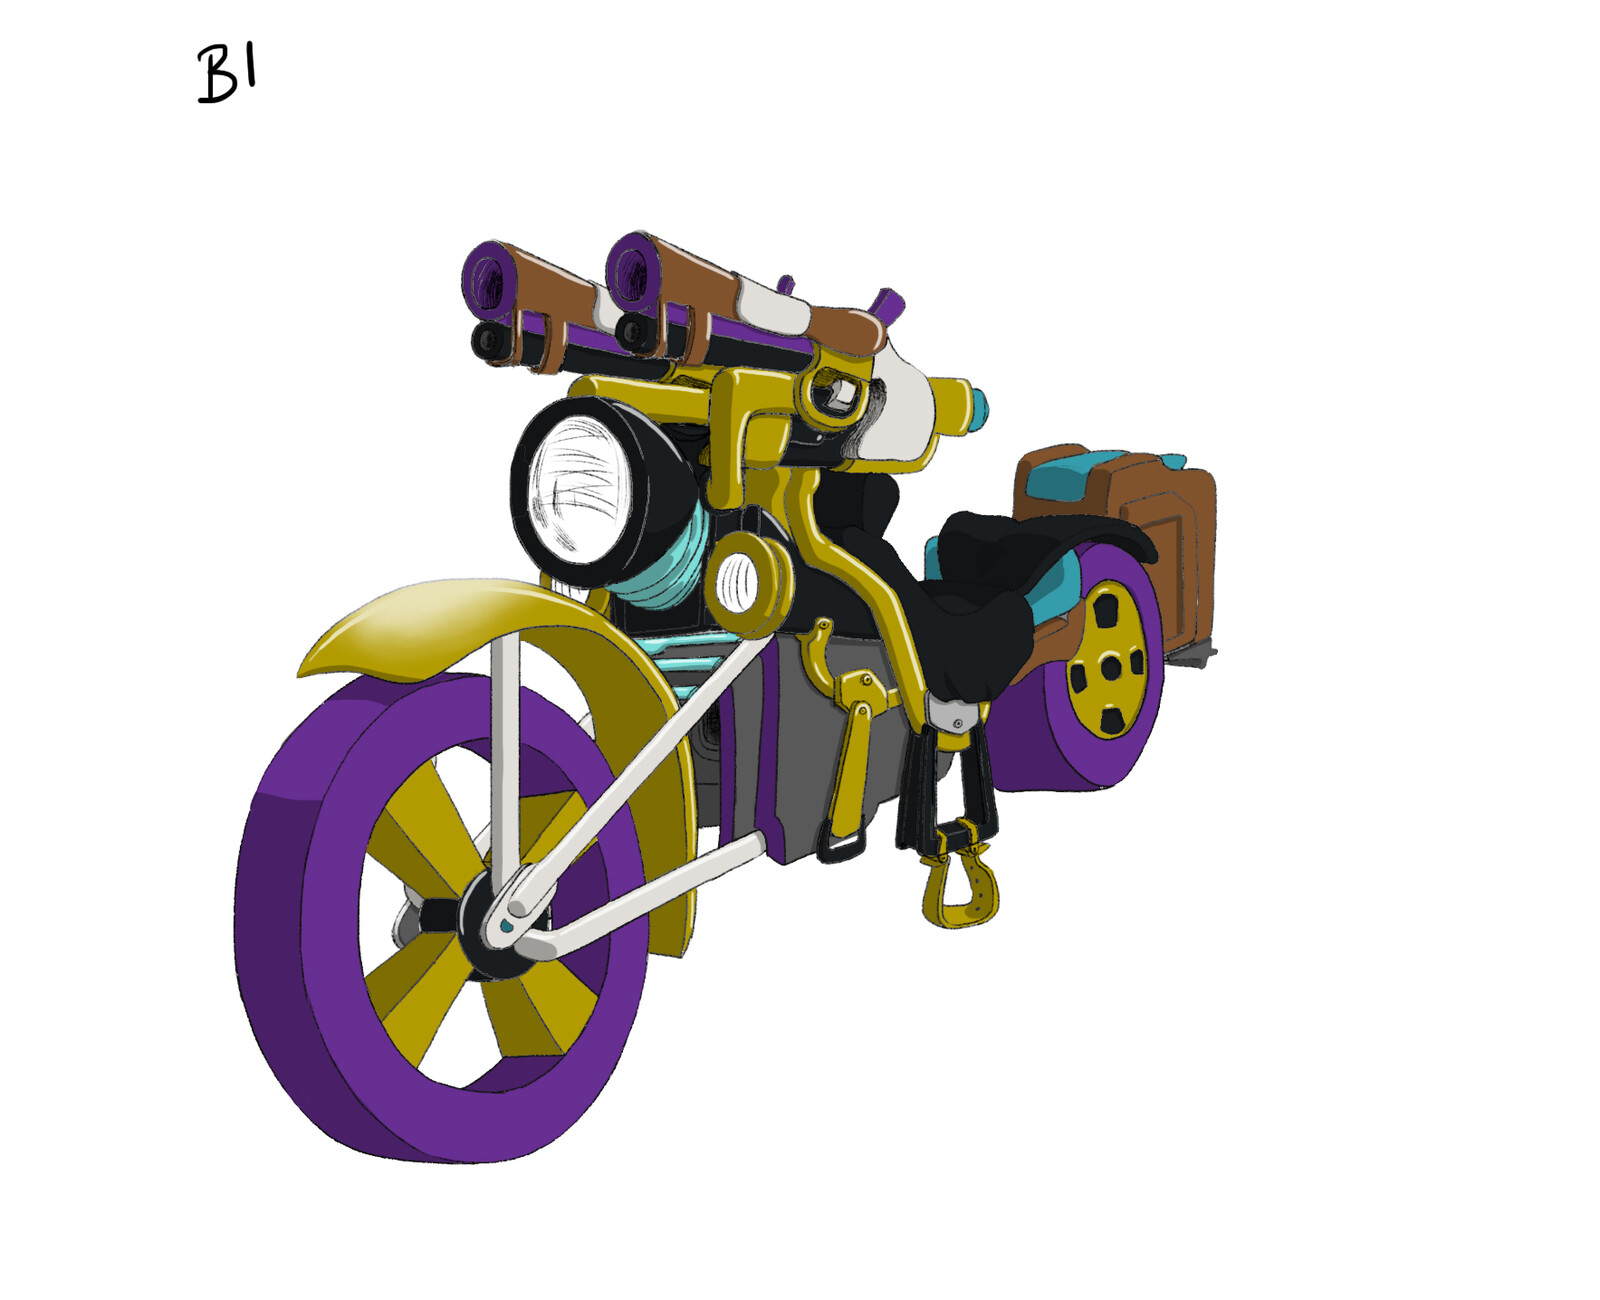 [Restless] project - Martn motorbike, sketches and colour keys